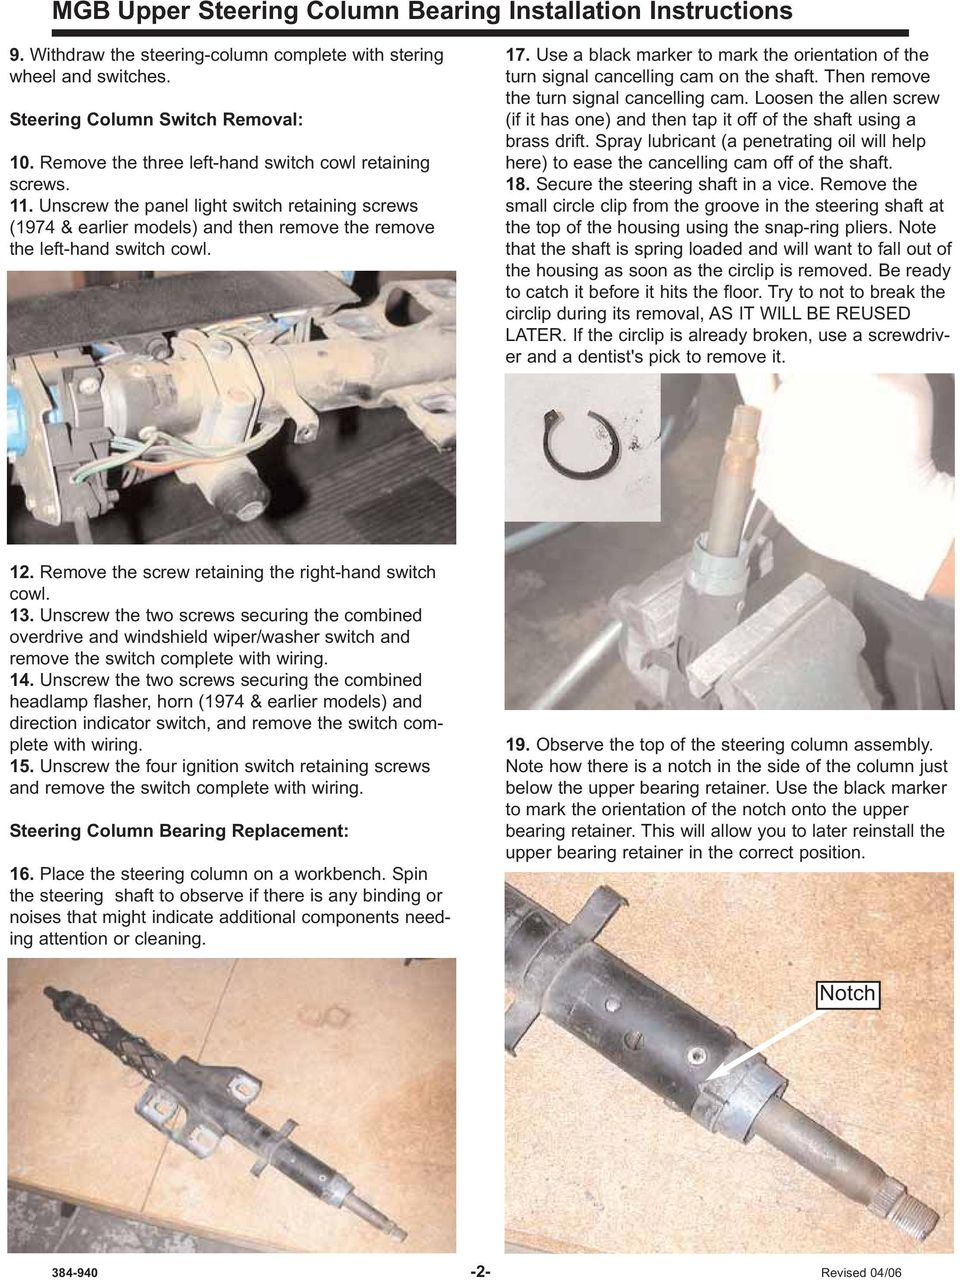 Upper Steering Column Bearing Kit Installation Instructions Pdf 97 Expedition Wiperscolum Switch Thy Still Run Use A Black Marker To Mark The Orientation Of Turn Signal Cancelling Cam On